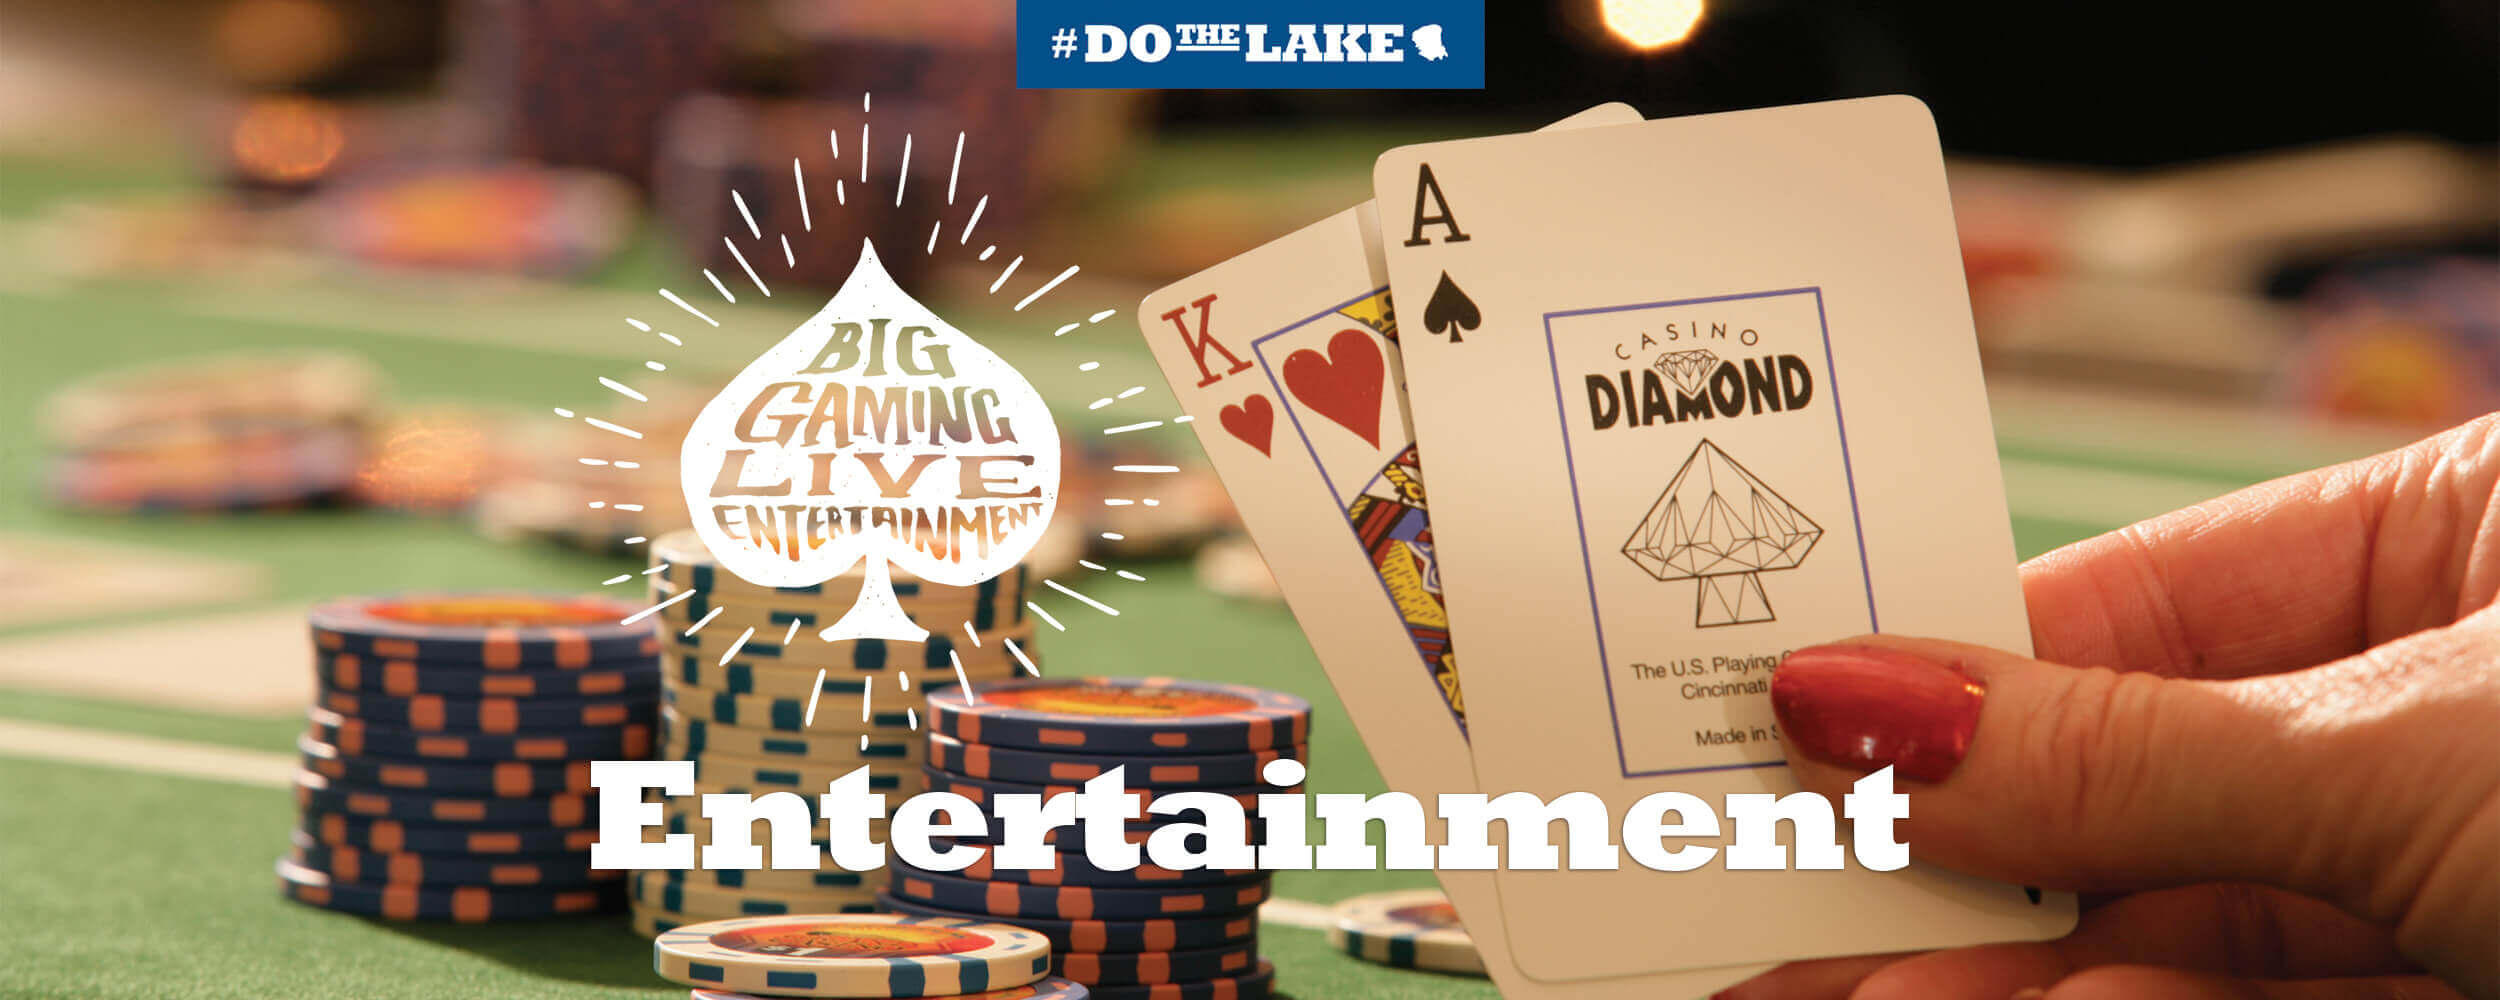 Black Jack at Grand Casino Mille Lacs